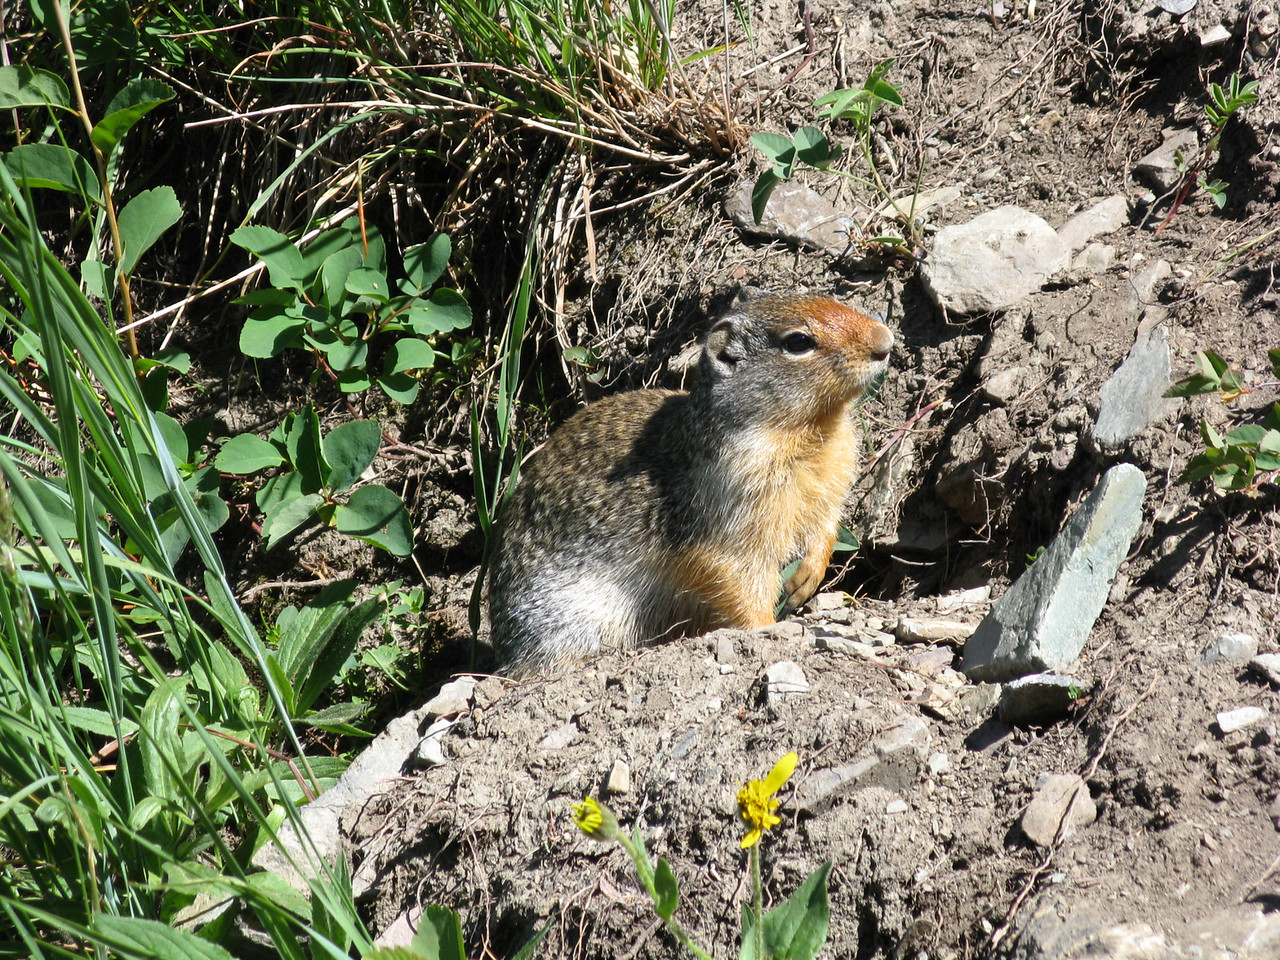 Another view of the ground squirrel.